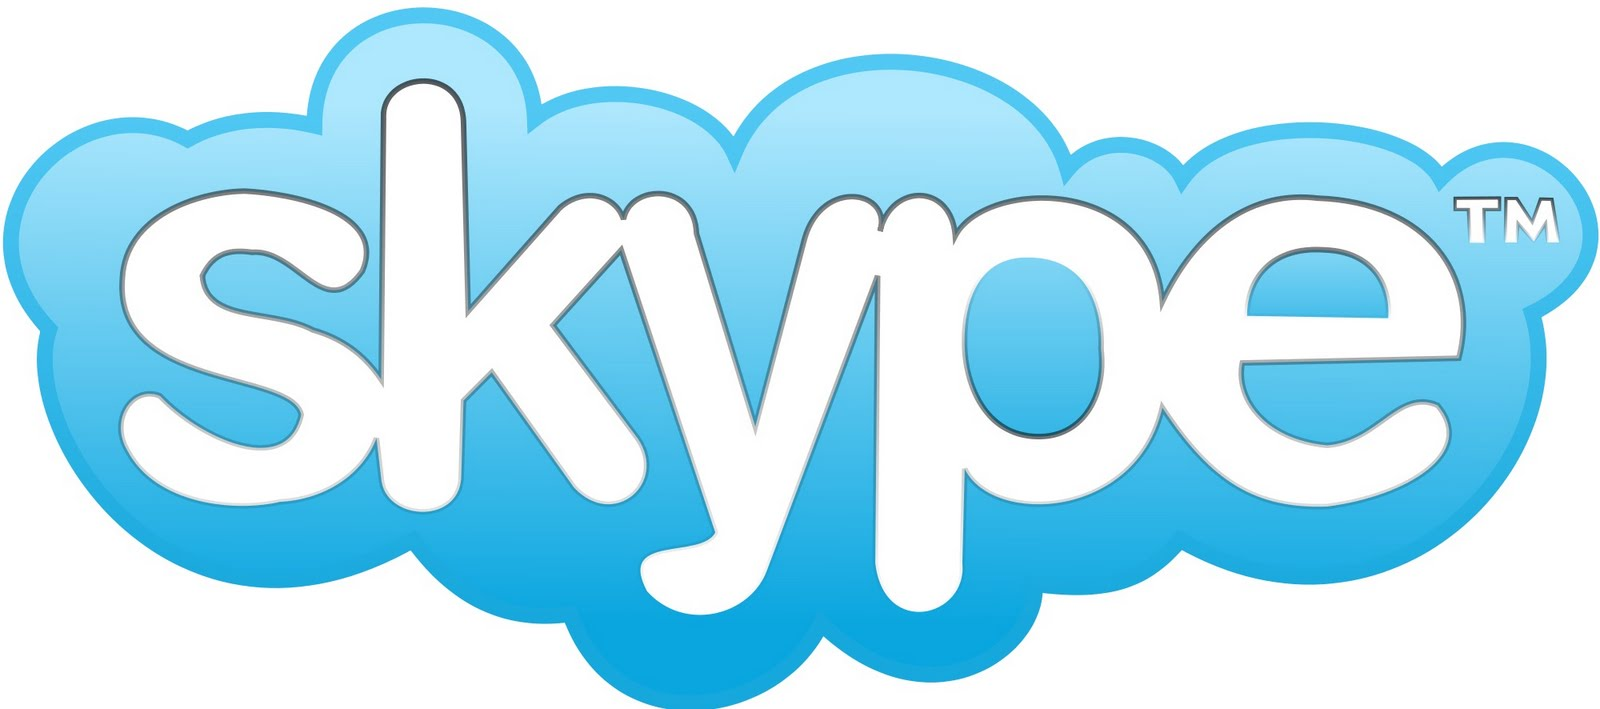 skype online counseling support via internet